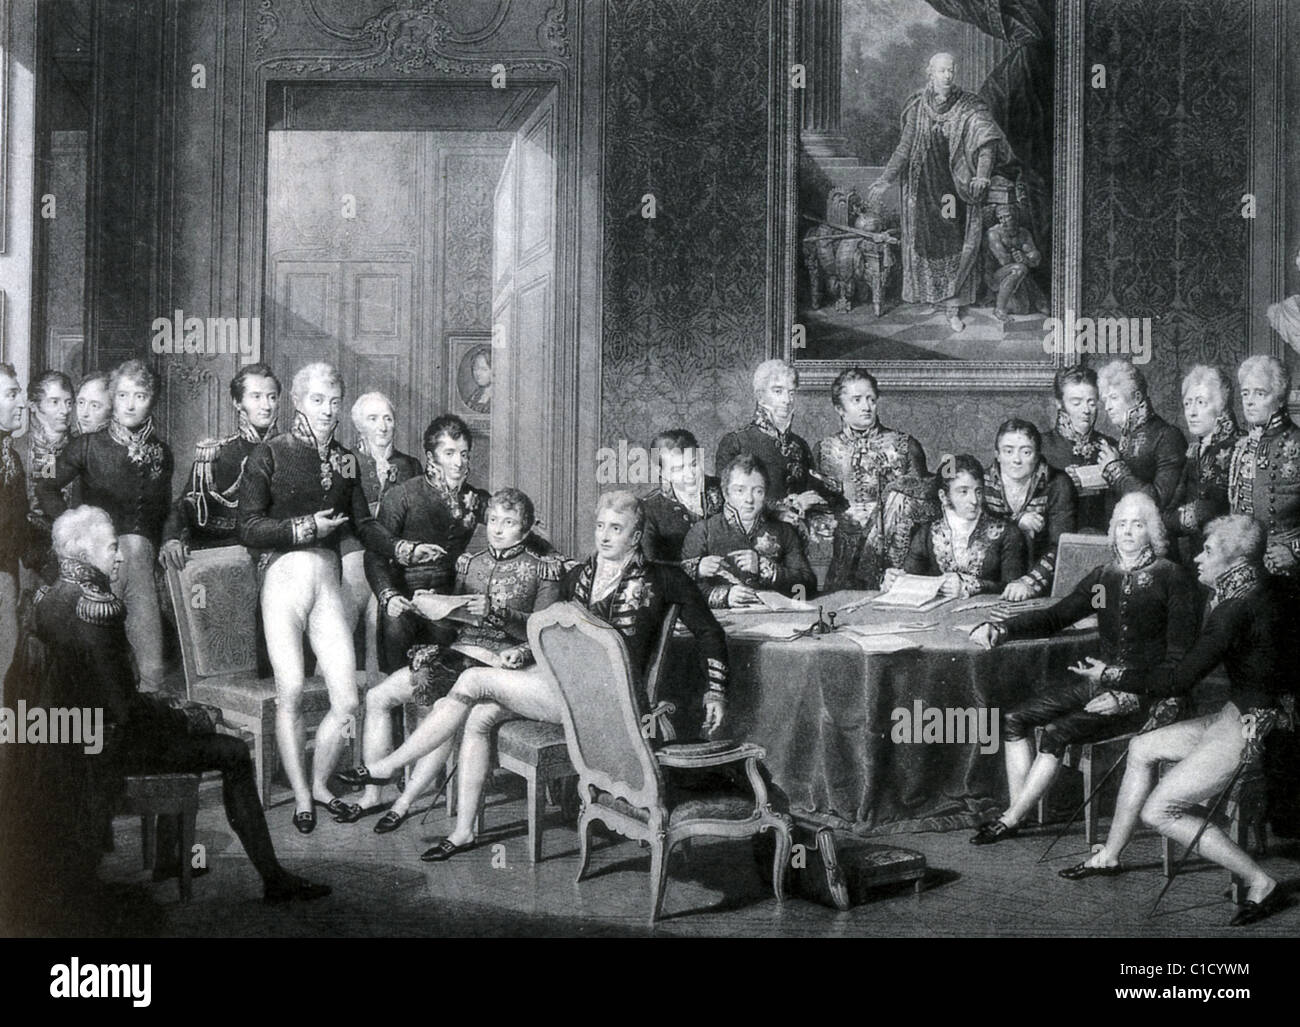 CONGRESS OF VIENNA 1814-1815 with Metternich standing at left in white trousers and Duke Of Wellington at far left - Stock Image